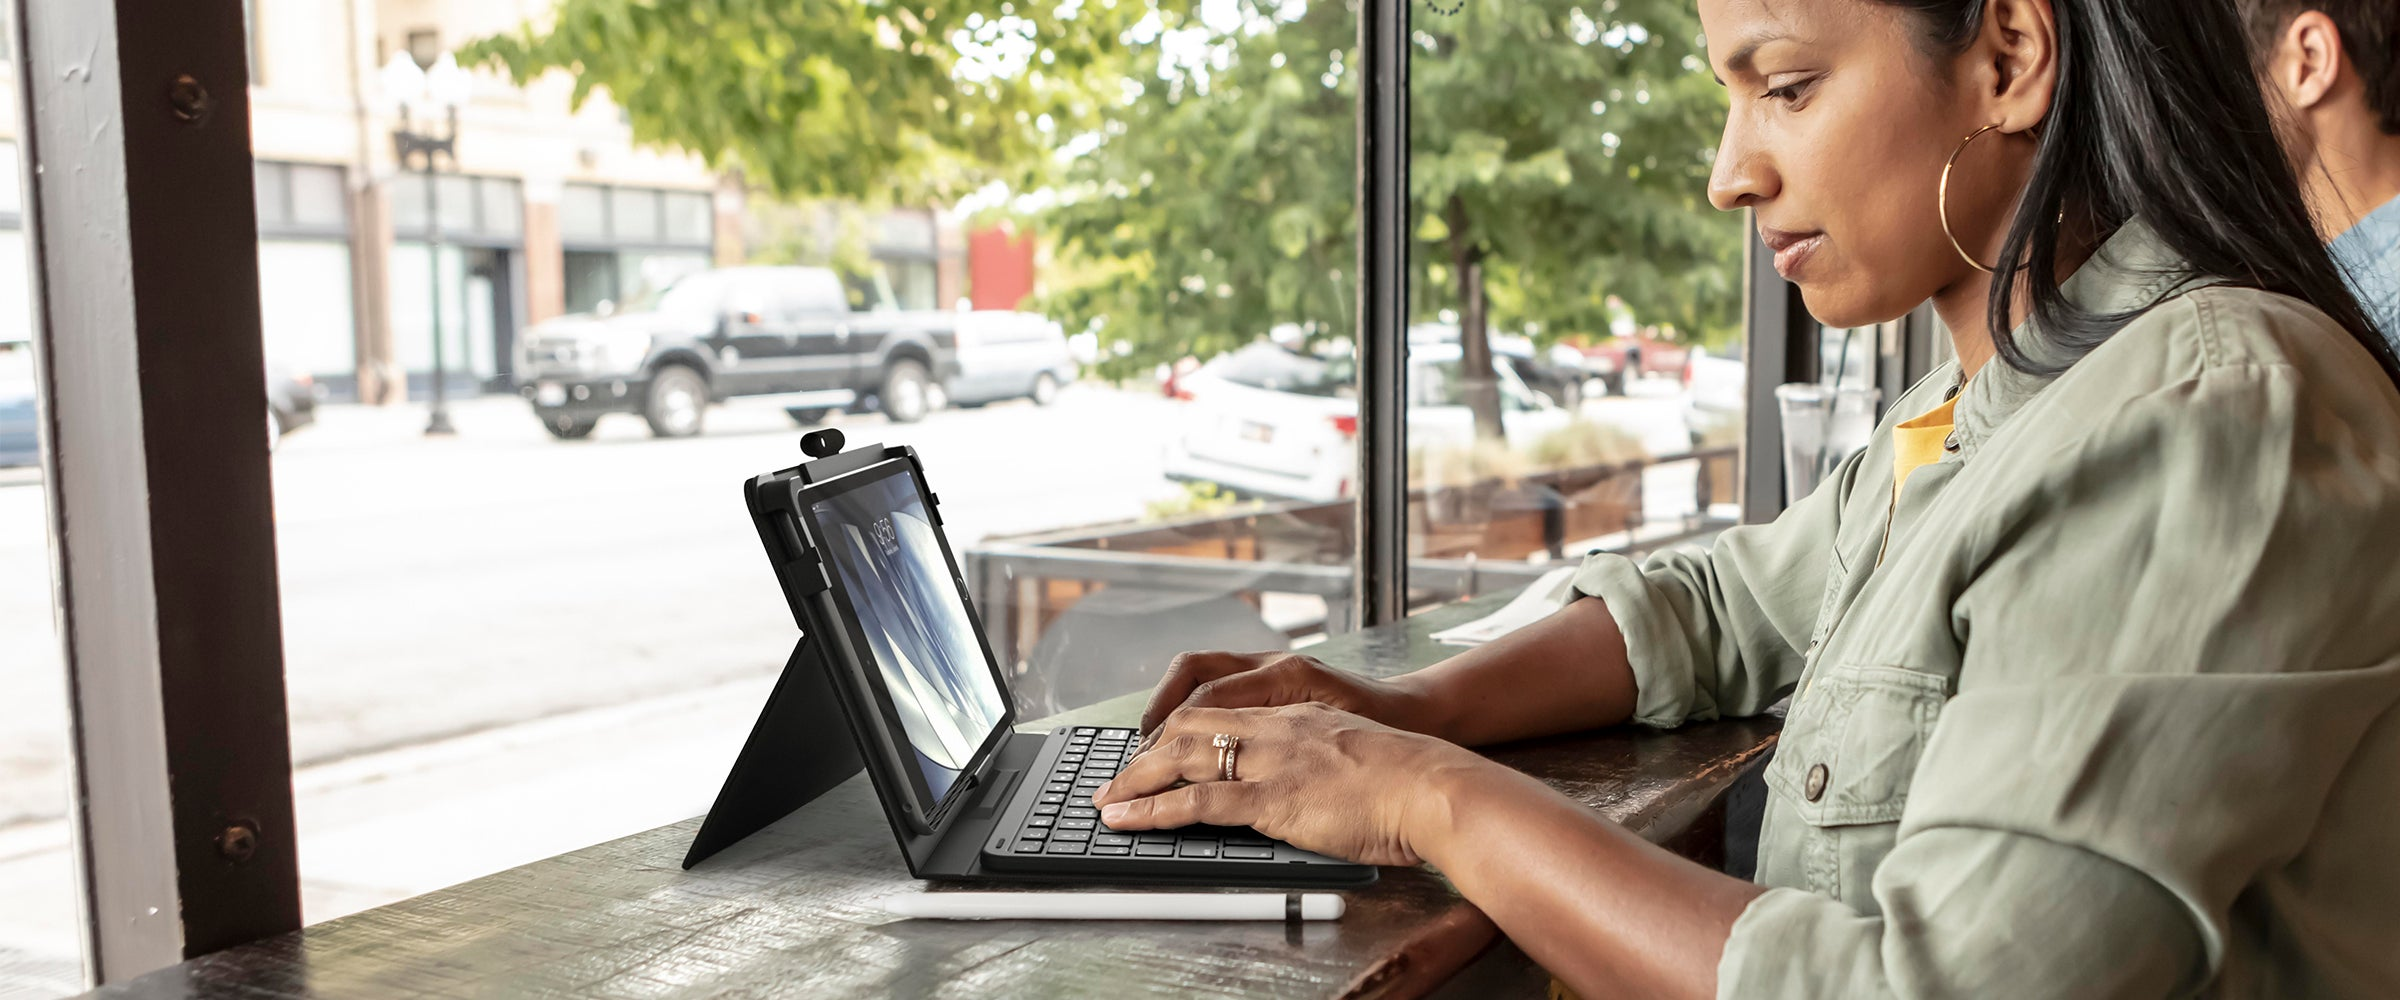 Woman by windows working on an iPad with a messenger folio case